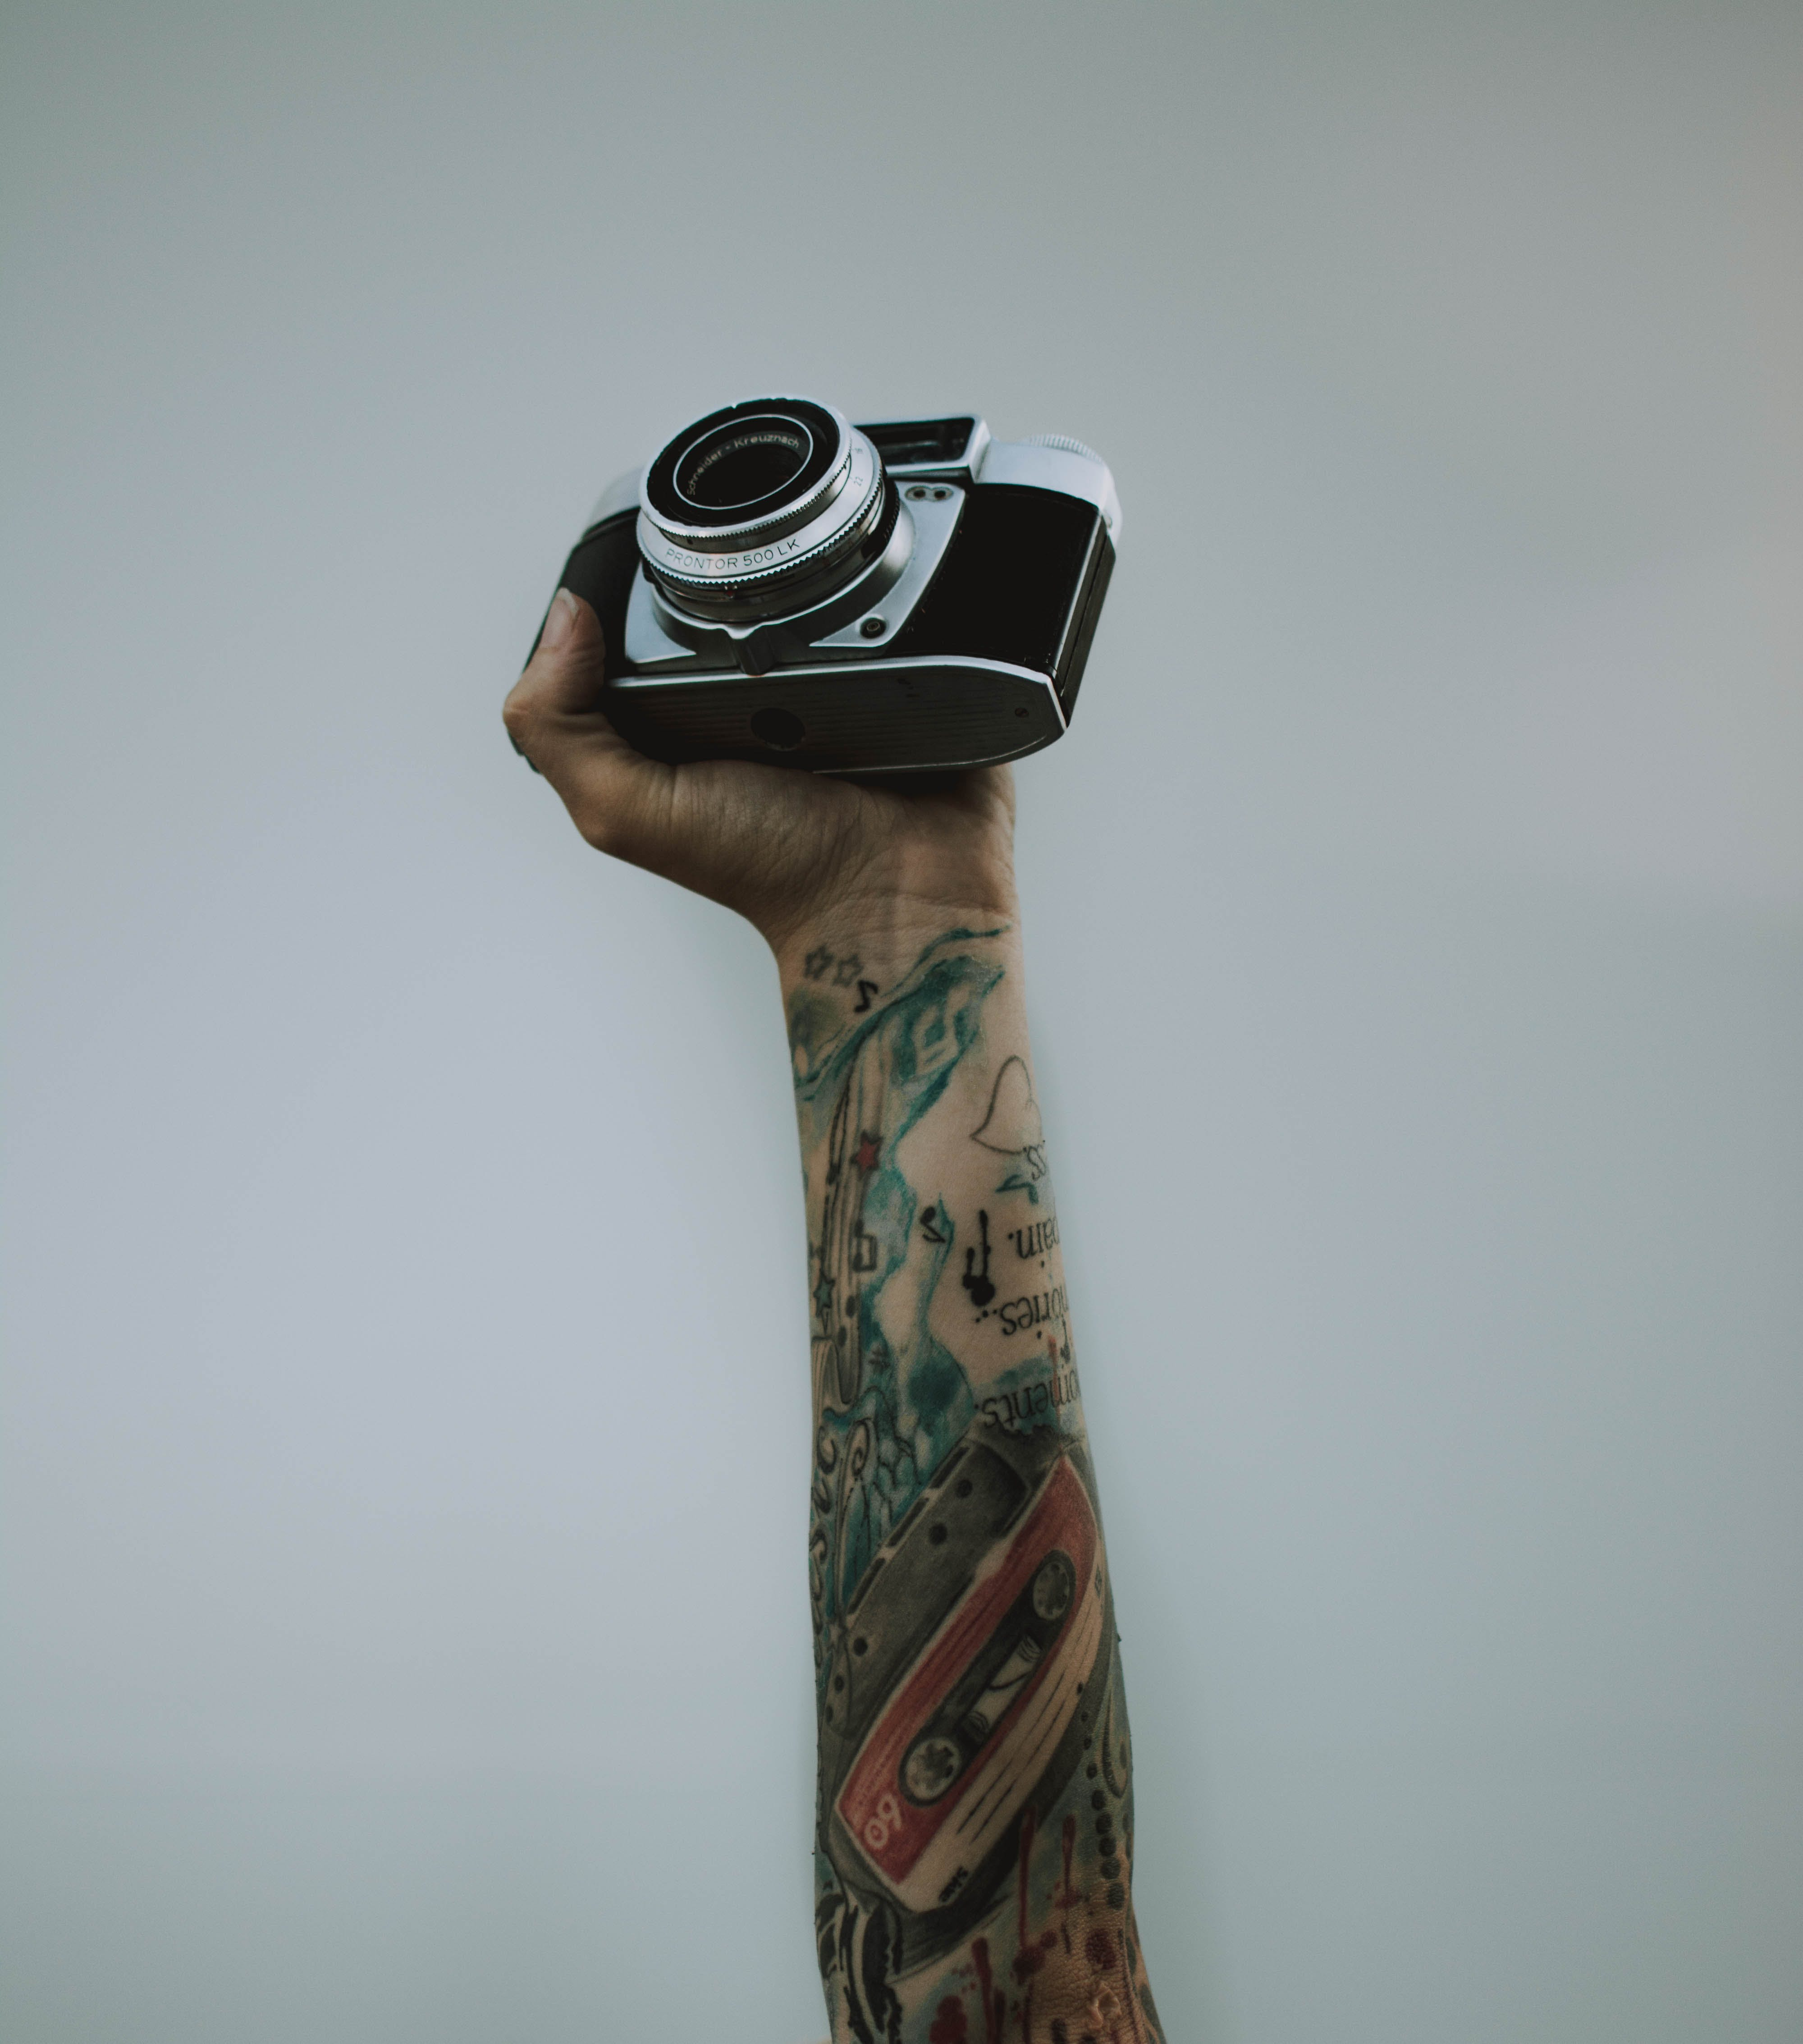 Person Holding Slr Camera